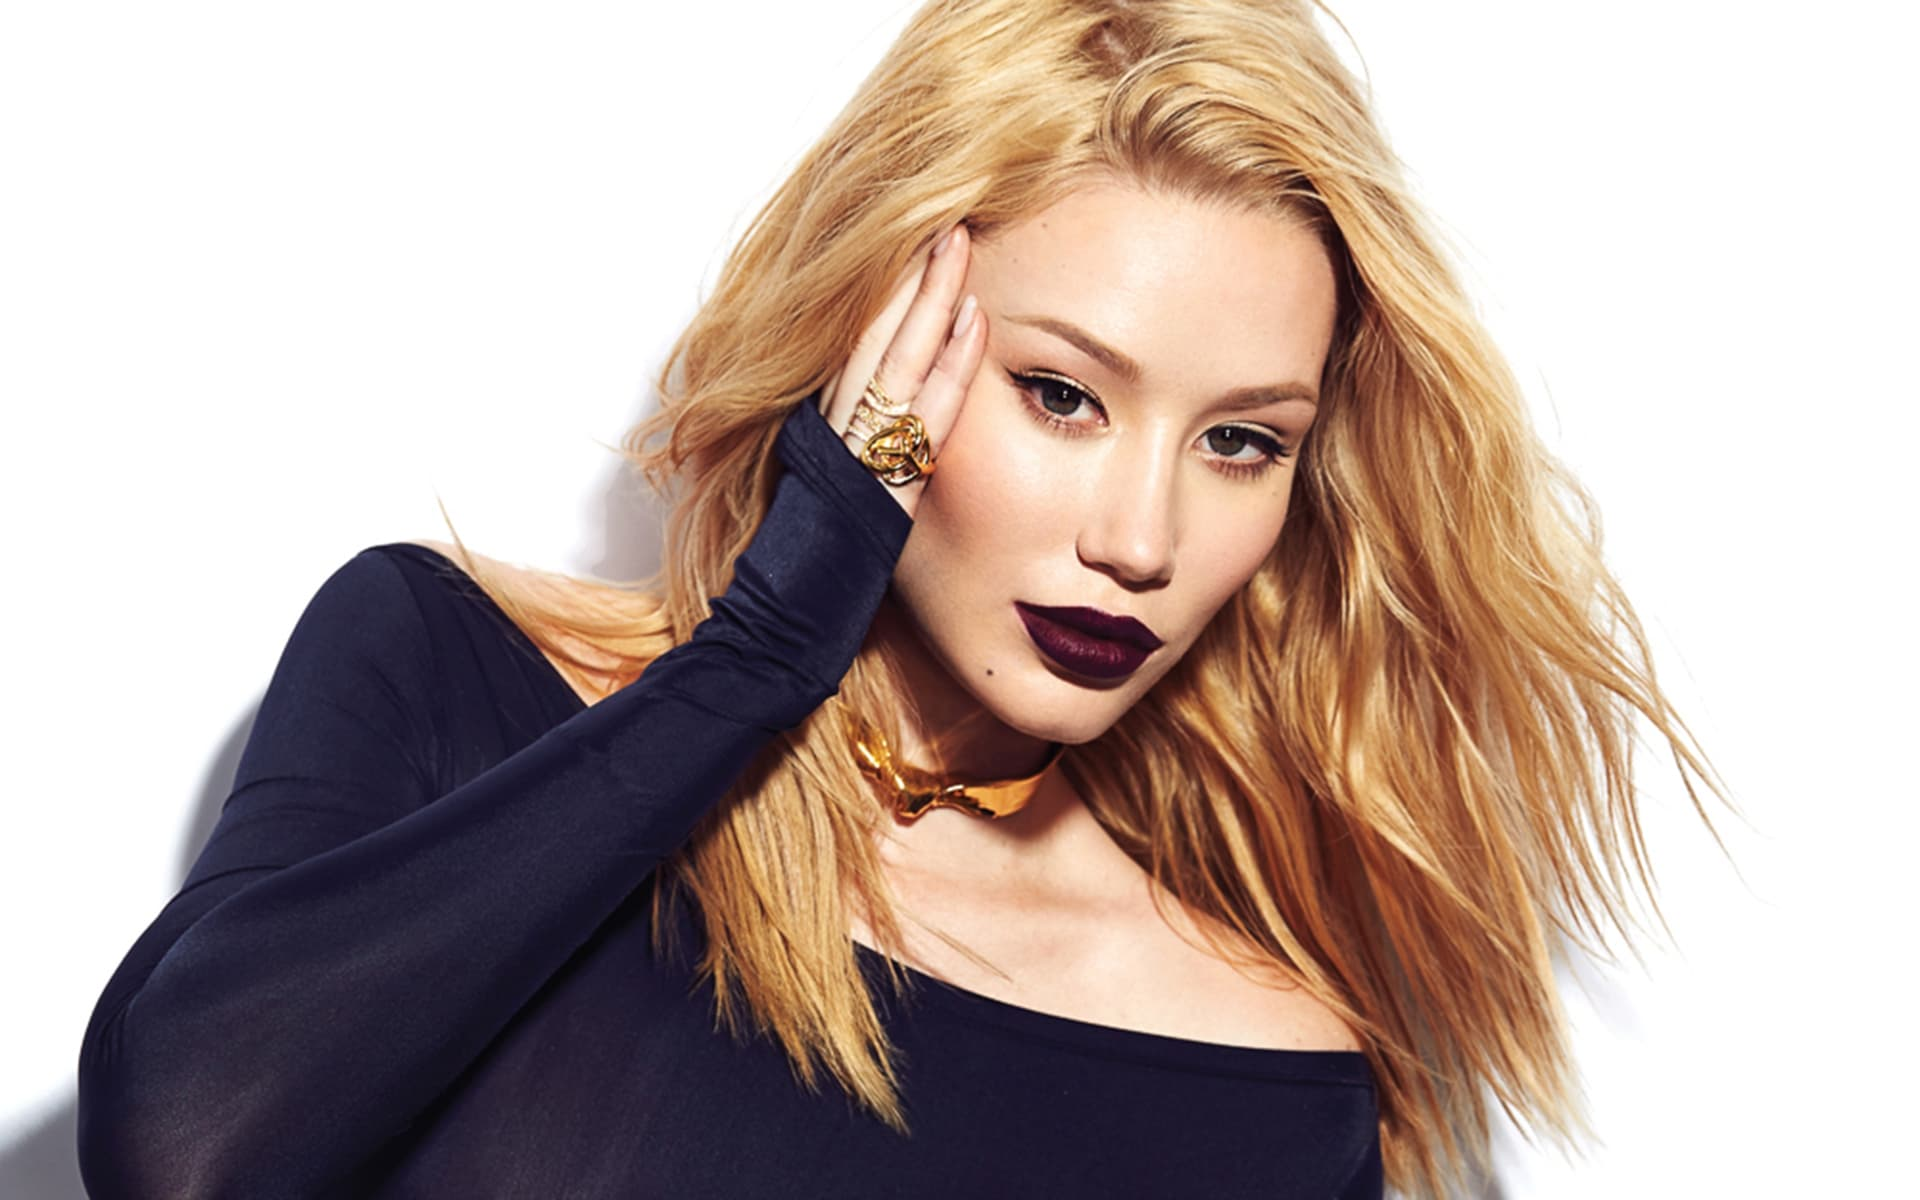 1920x1200 iggy azalea white background hd images download - Download Hd iggy ...